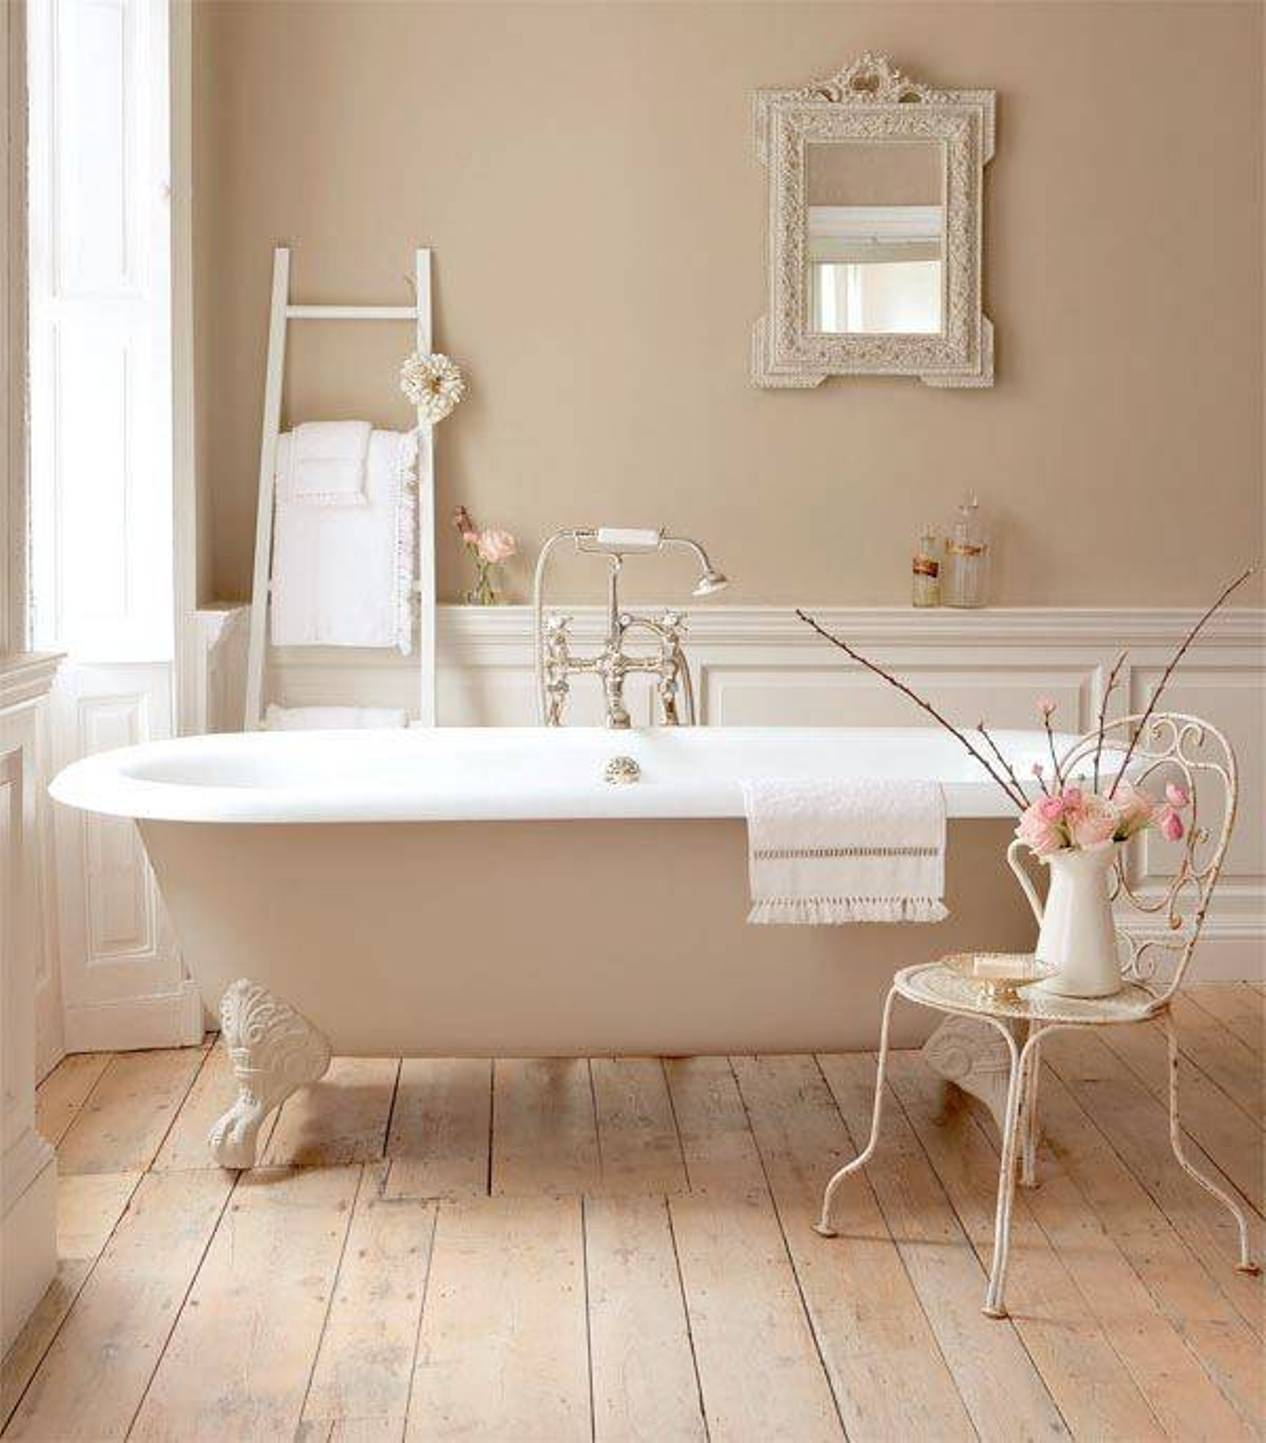 Rinnova il tuo bagno con la linea le bain paris san giorgio for French shabby chic bathroom ideas